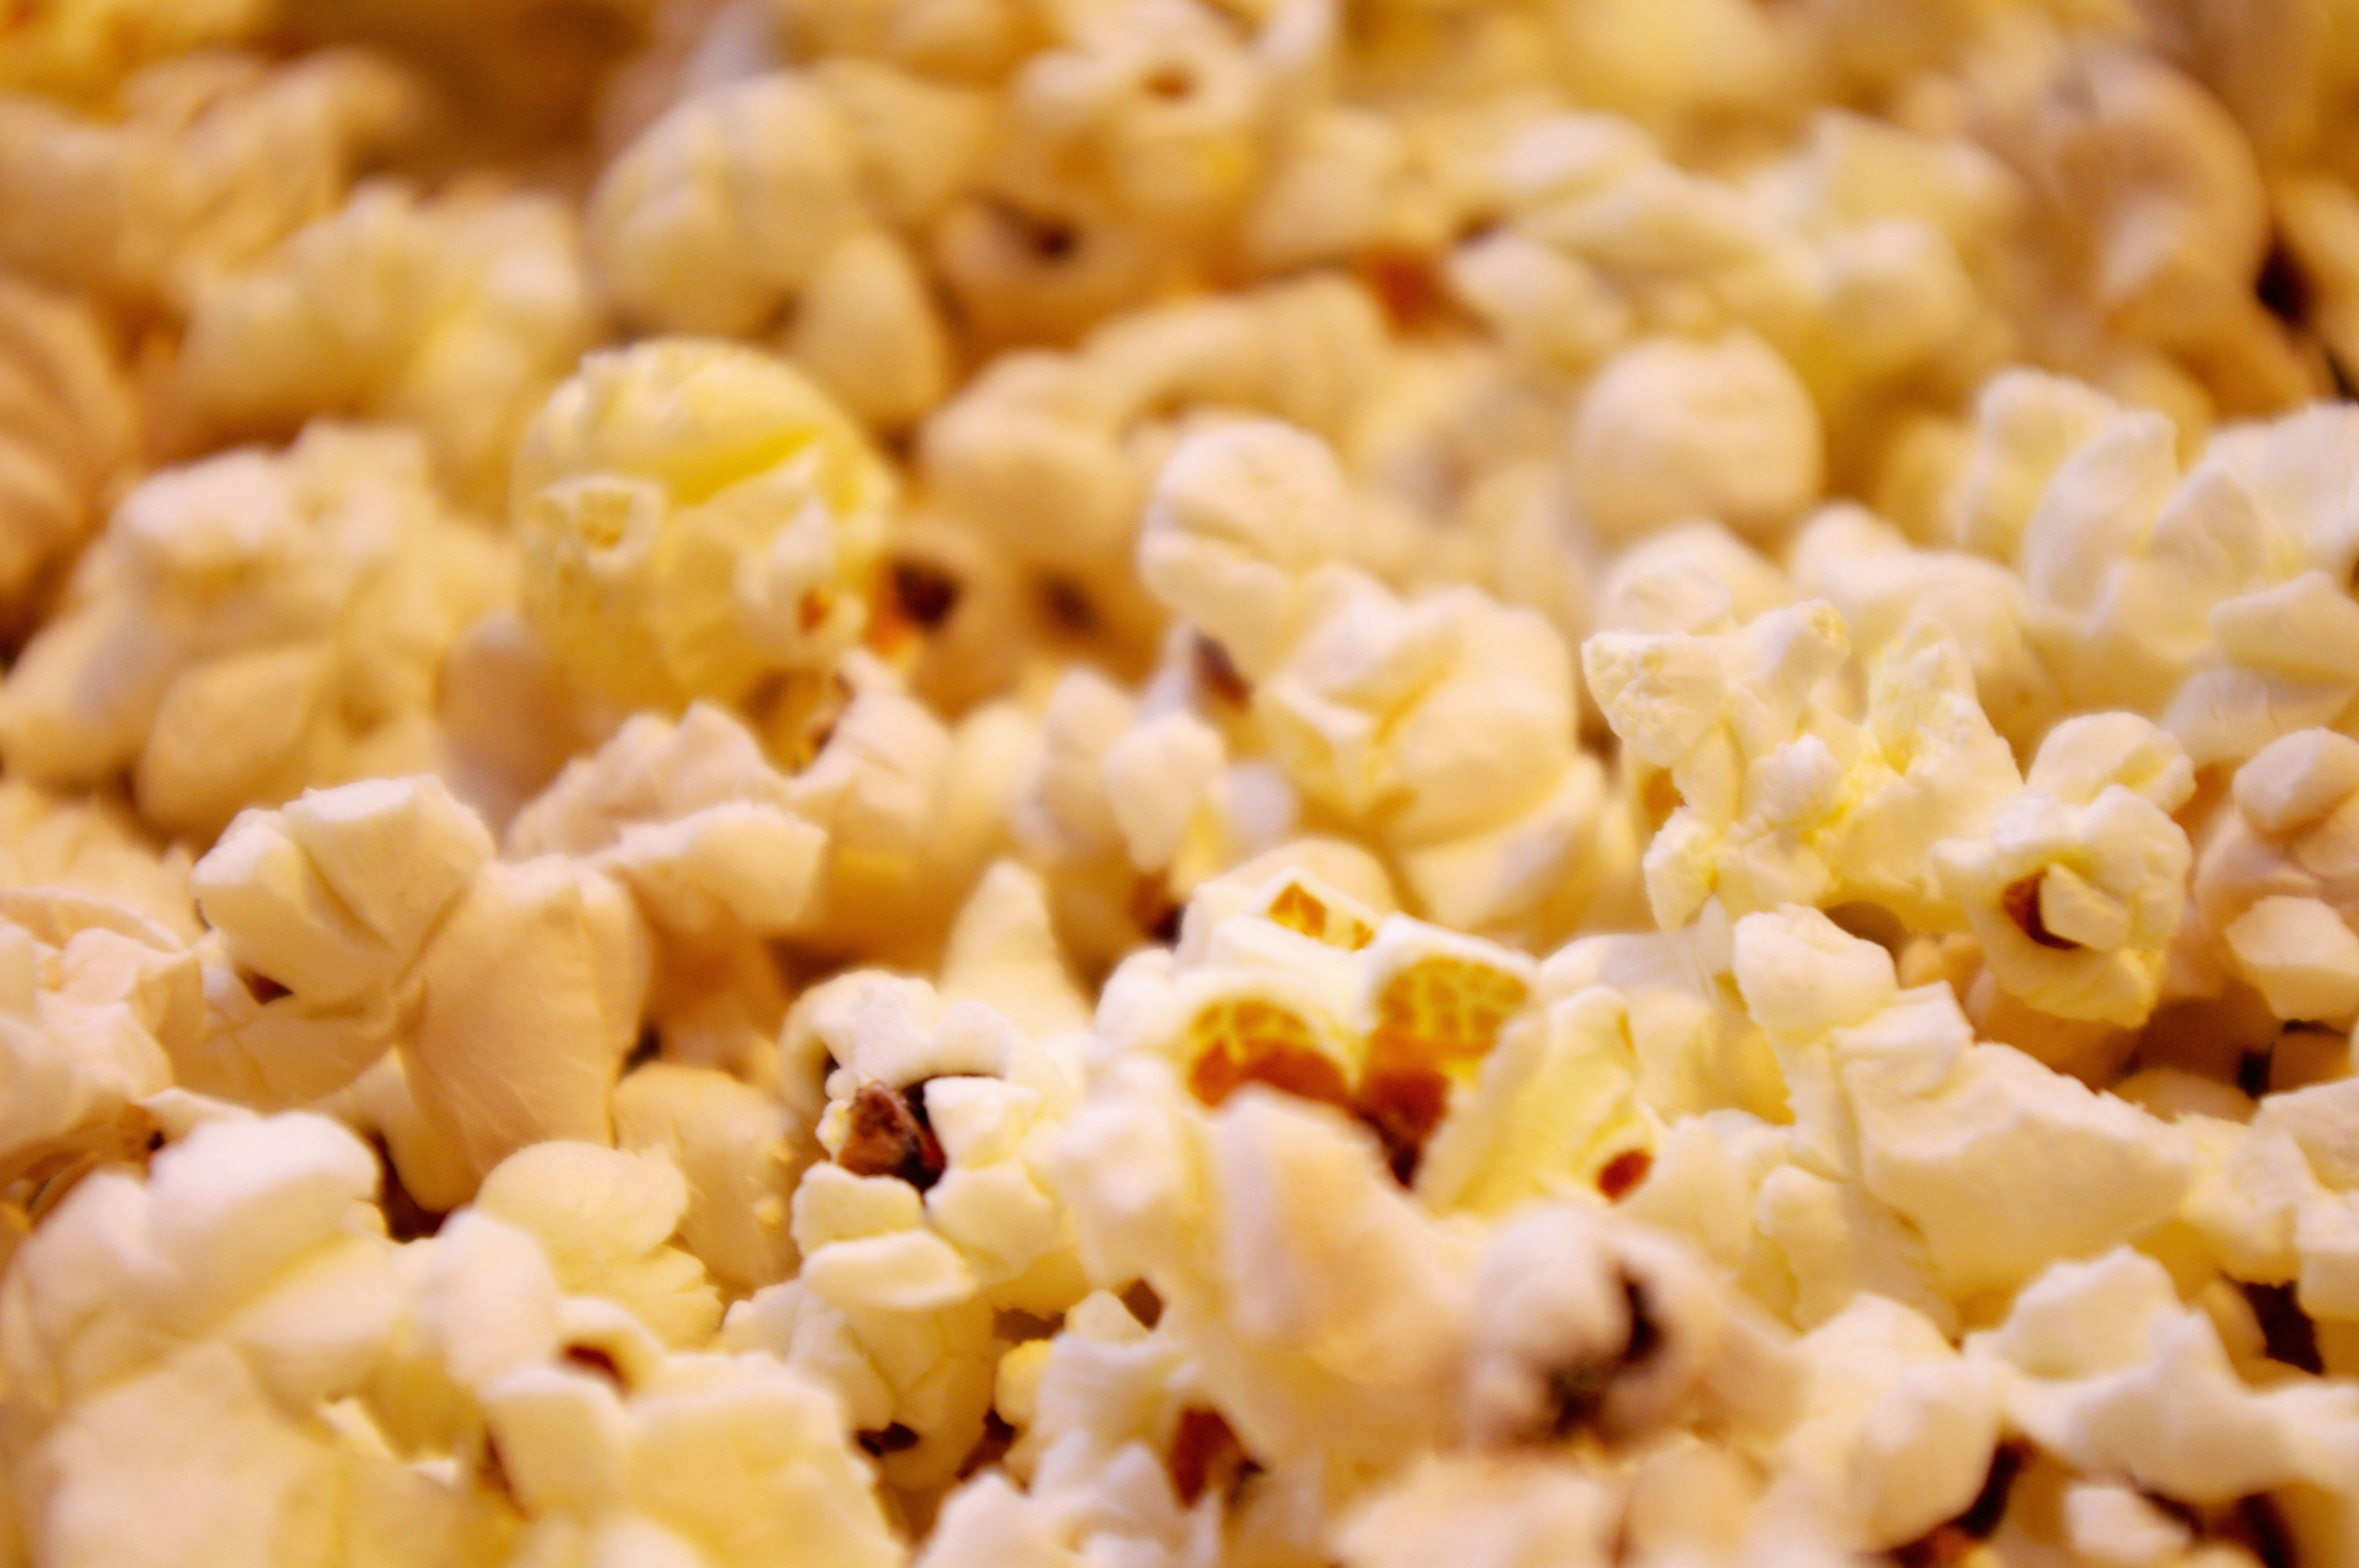 Snack Myths Is Microwave Popcorn Bad For You Up Diet About Pop Corn Close 3